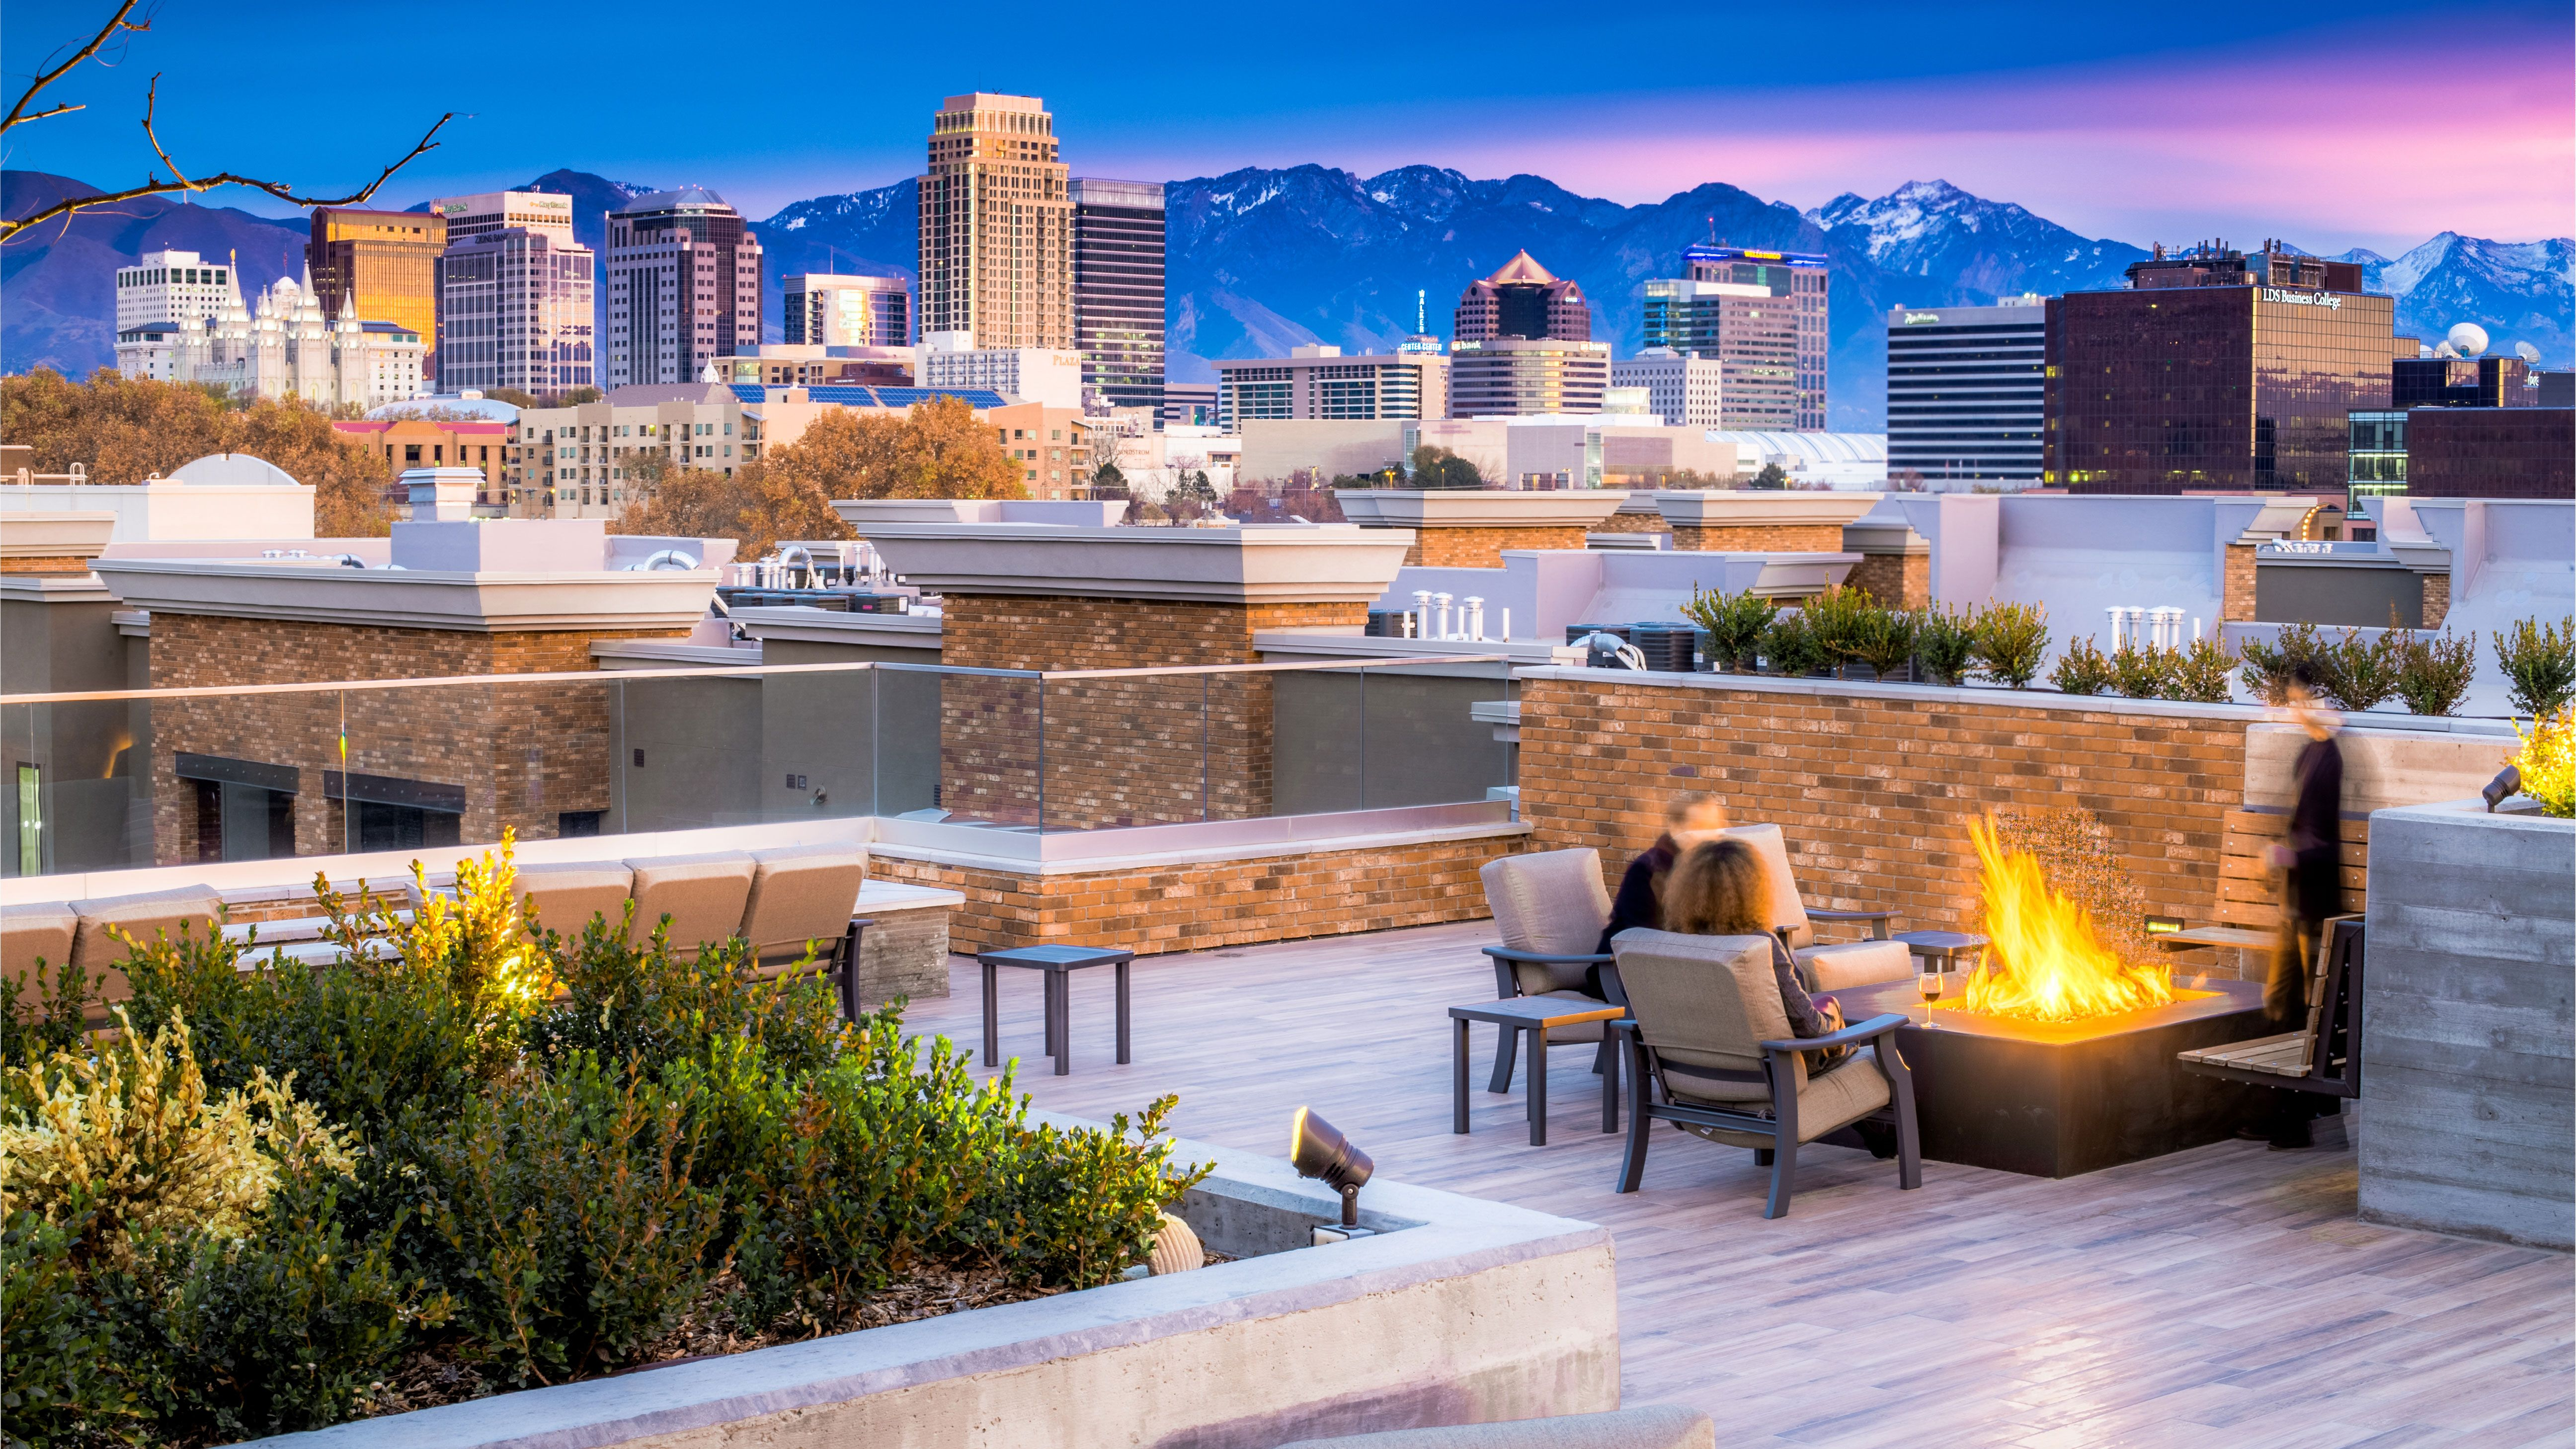 4th West Rooftop Skylounge Resort Style